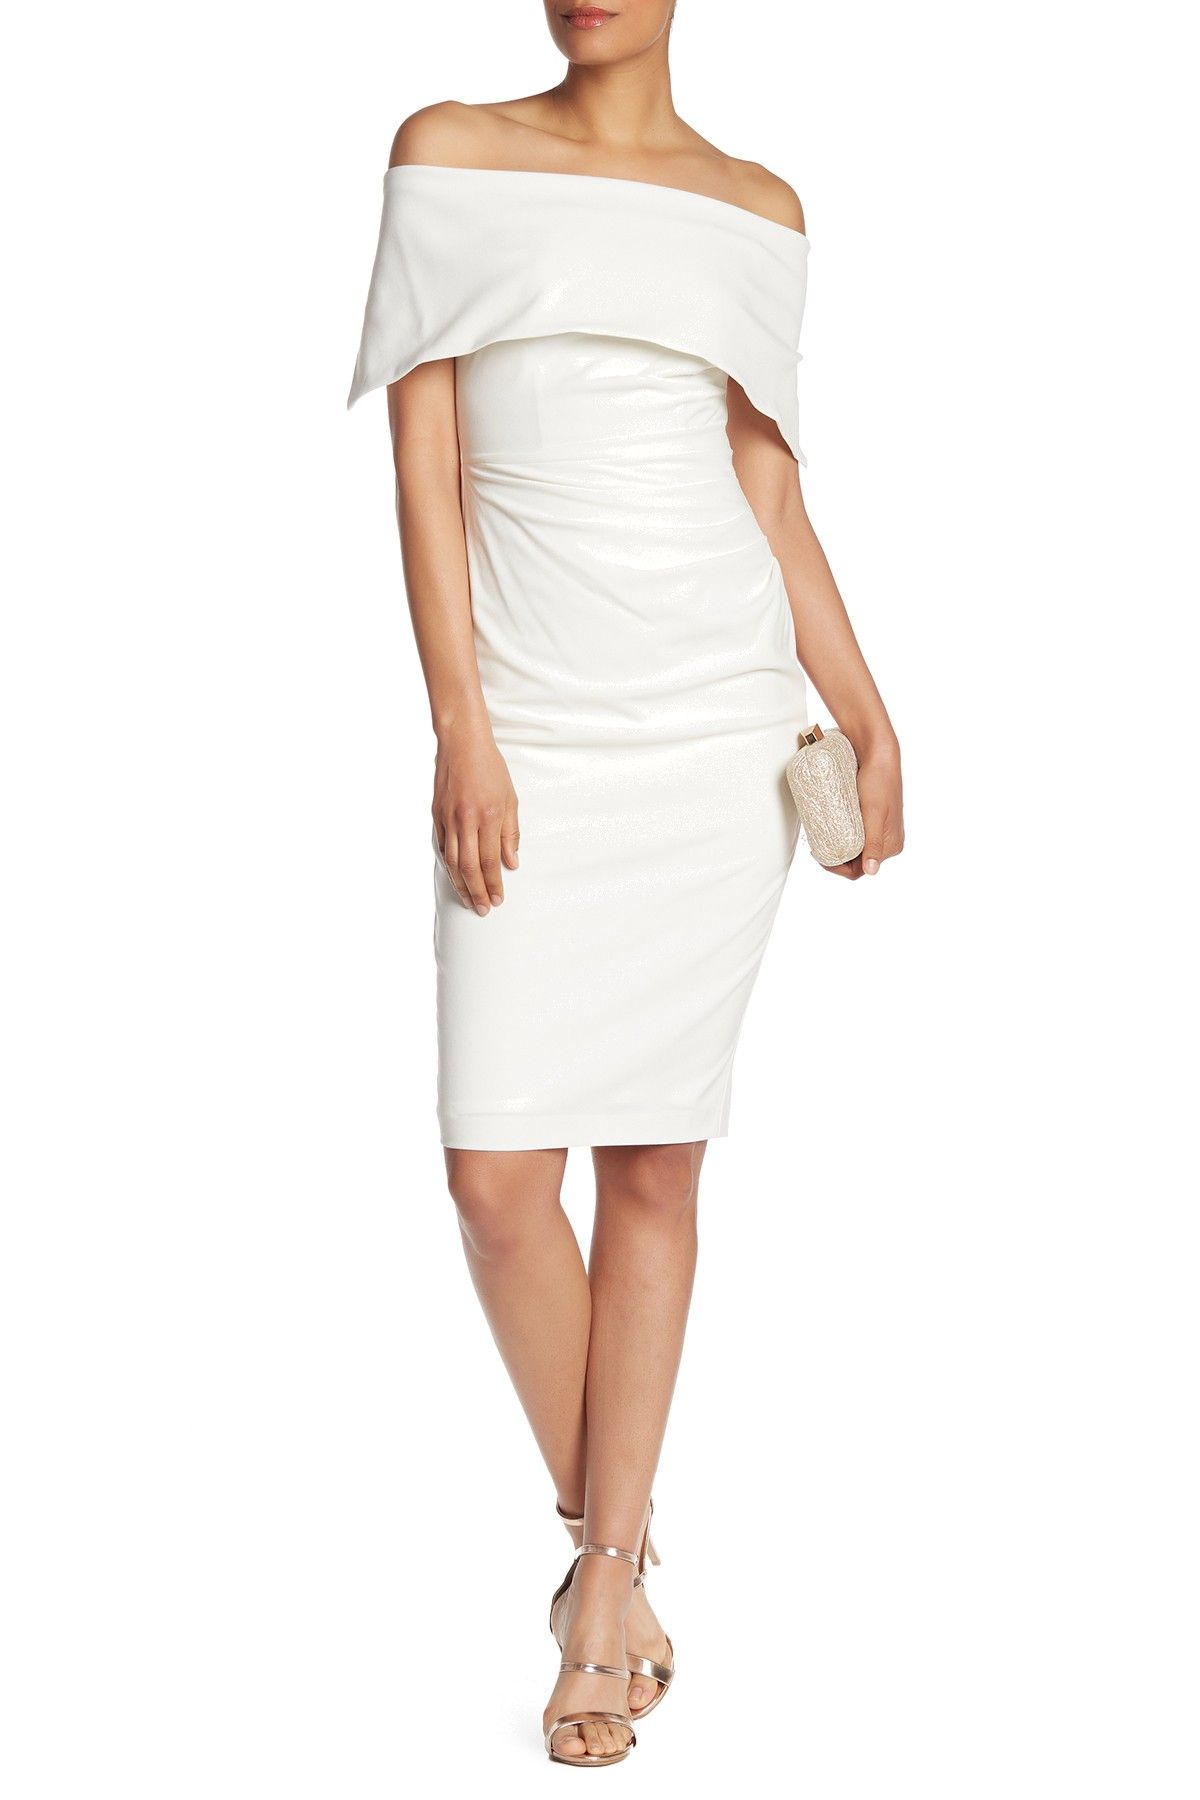 Off The Shoulder Sheath Dress By Vince Camuto On Nordstrom Rack Sheath Dress Dresses Nordstrom Dresses [ 1800 x 1200 Pixel ]